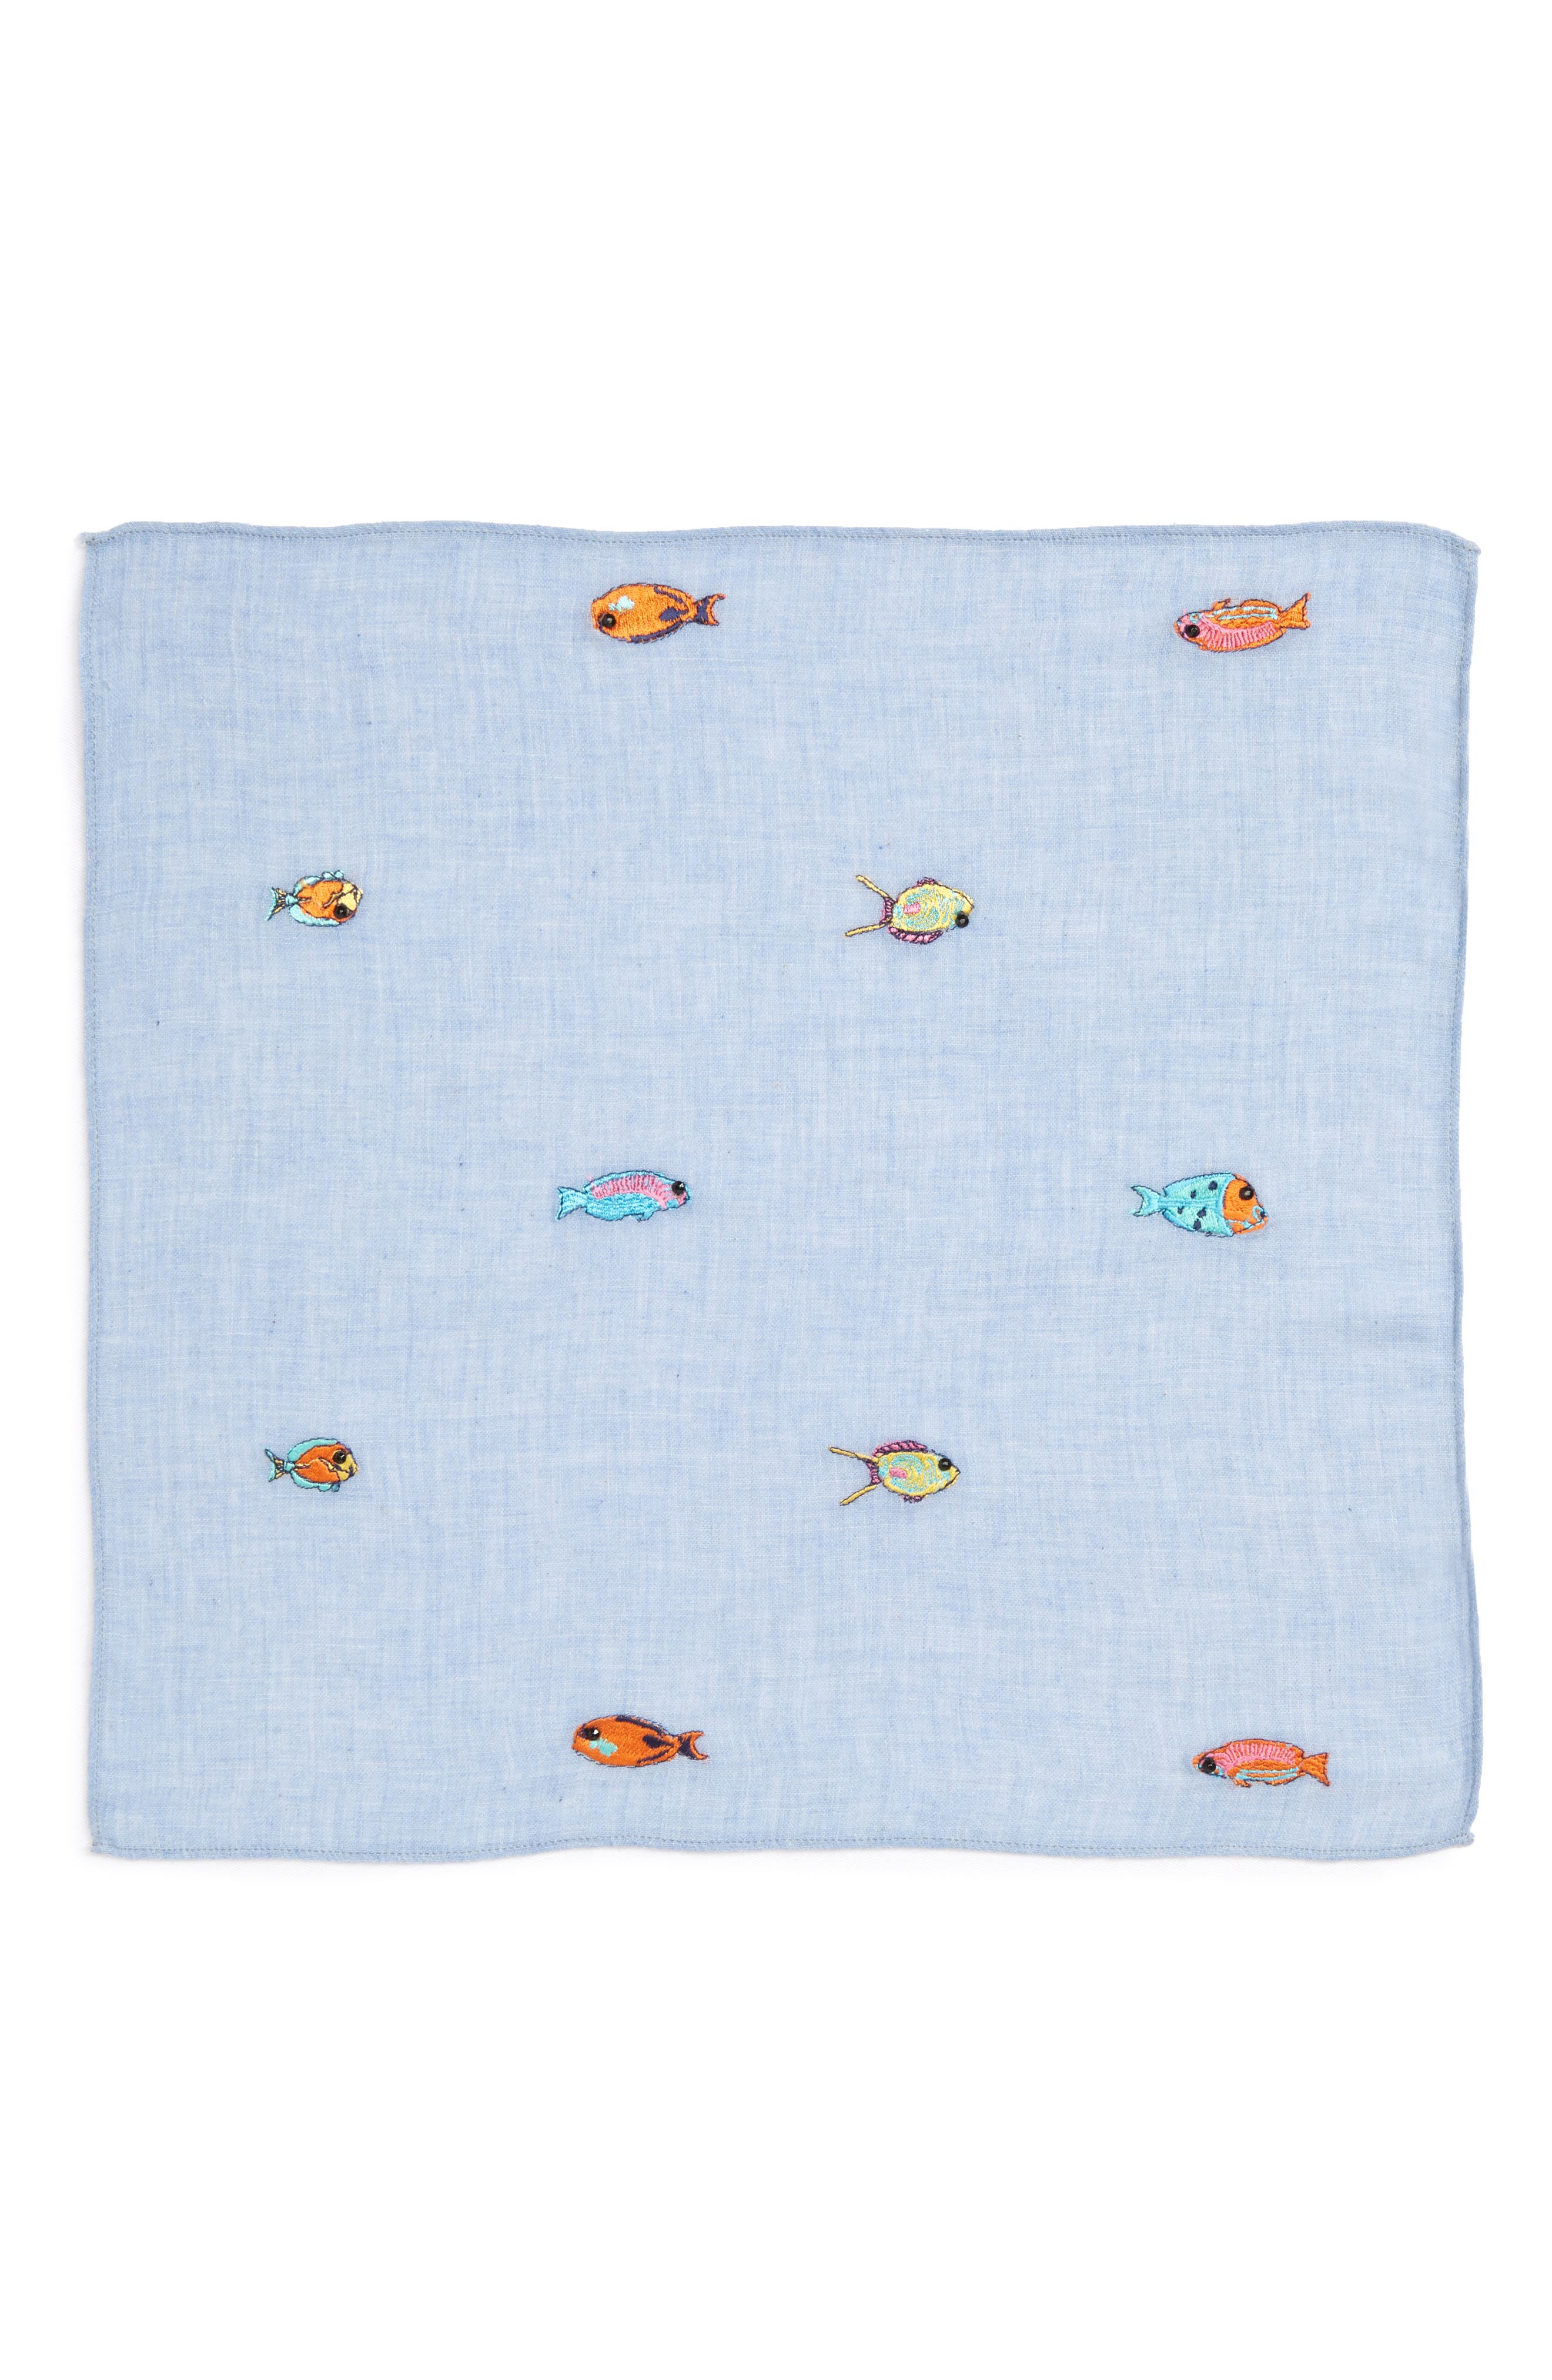 Embroidered Fish Pocket Square,                             Alternate thumbnail 2, color,                             424